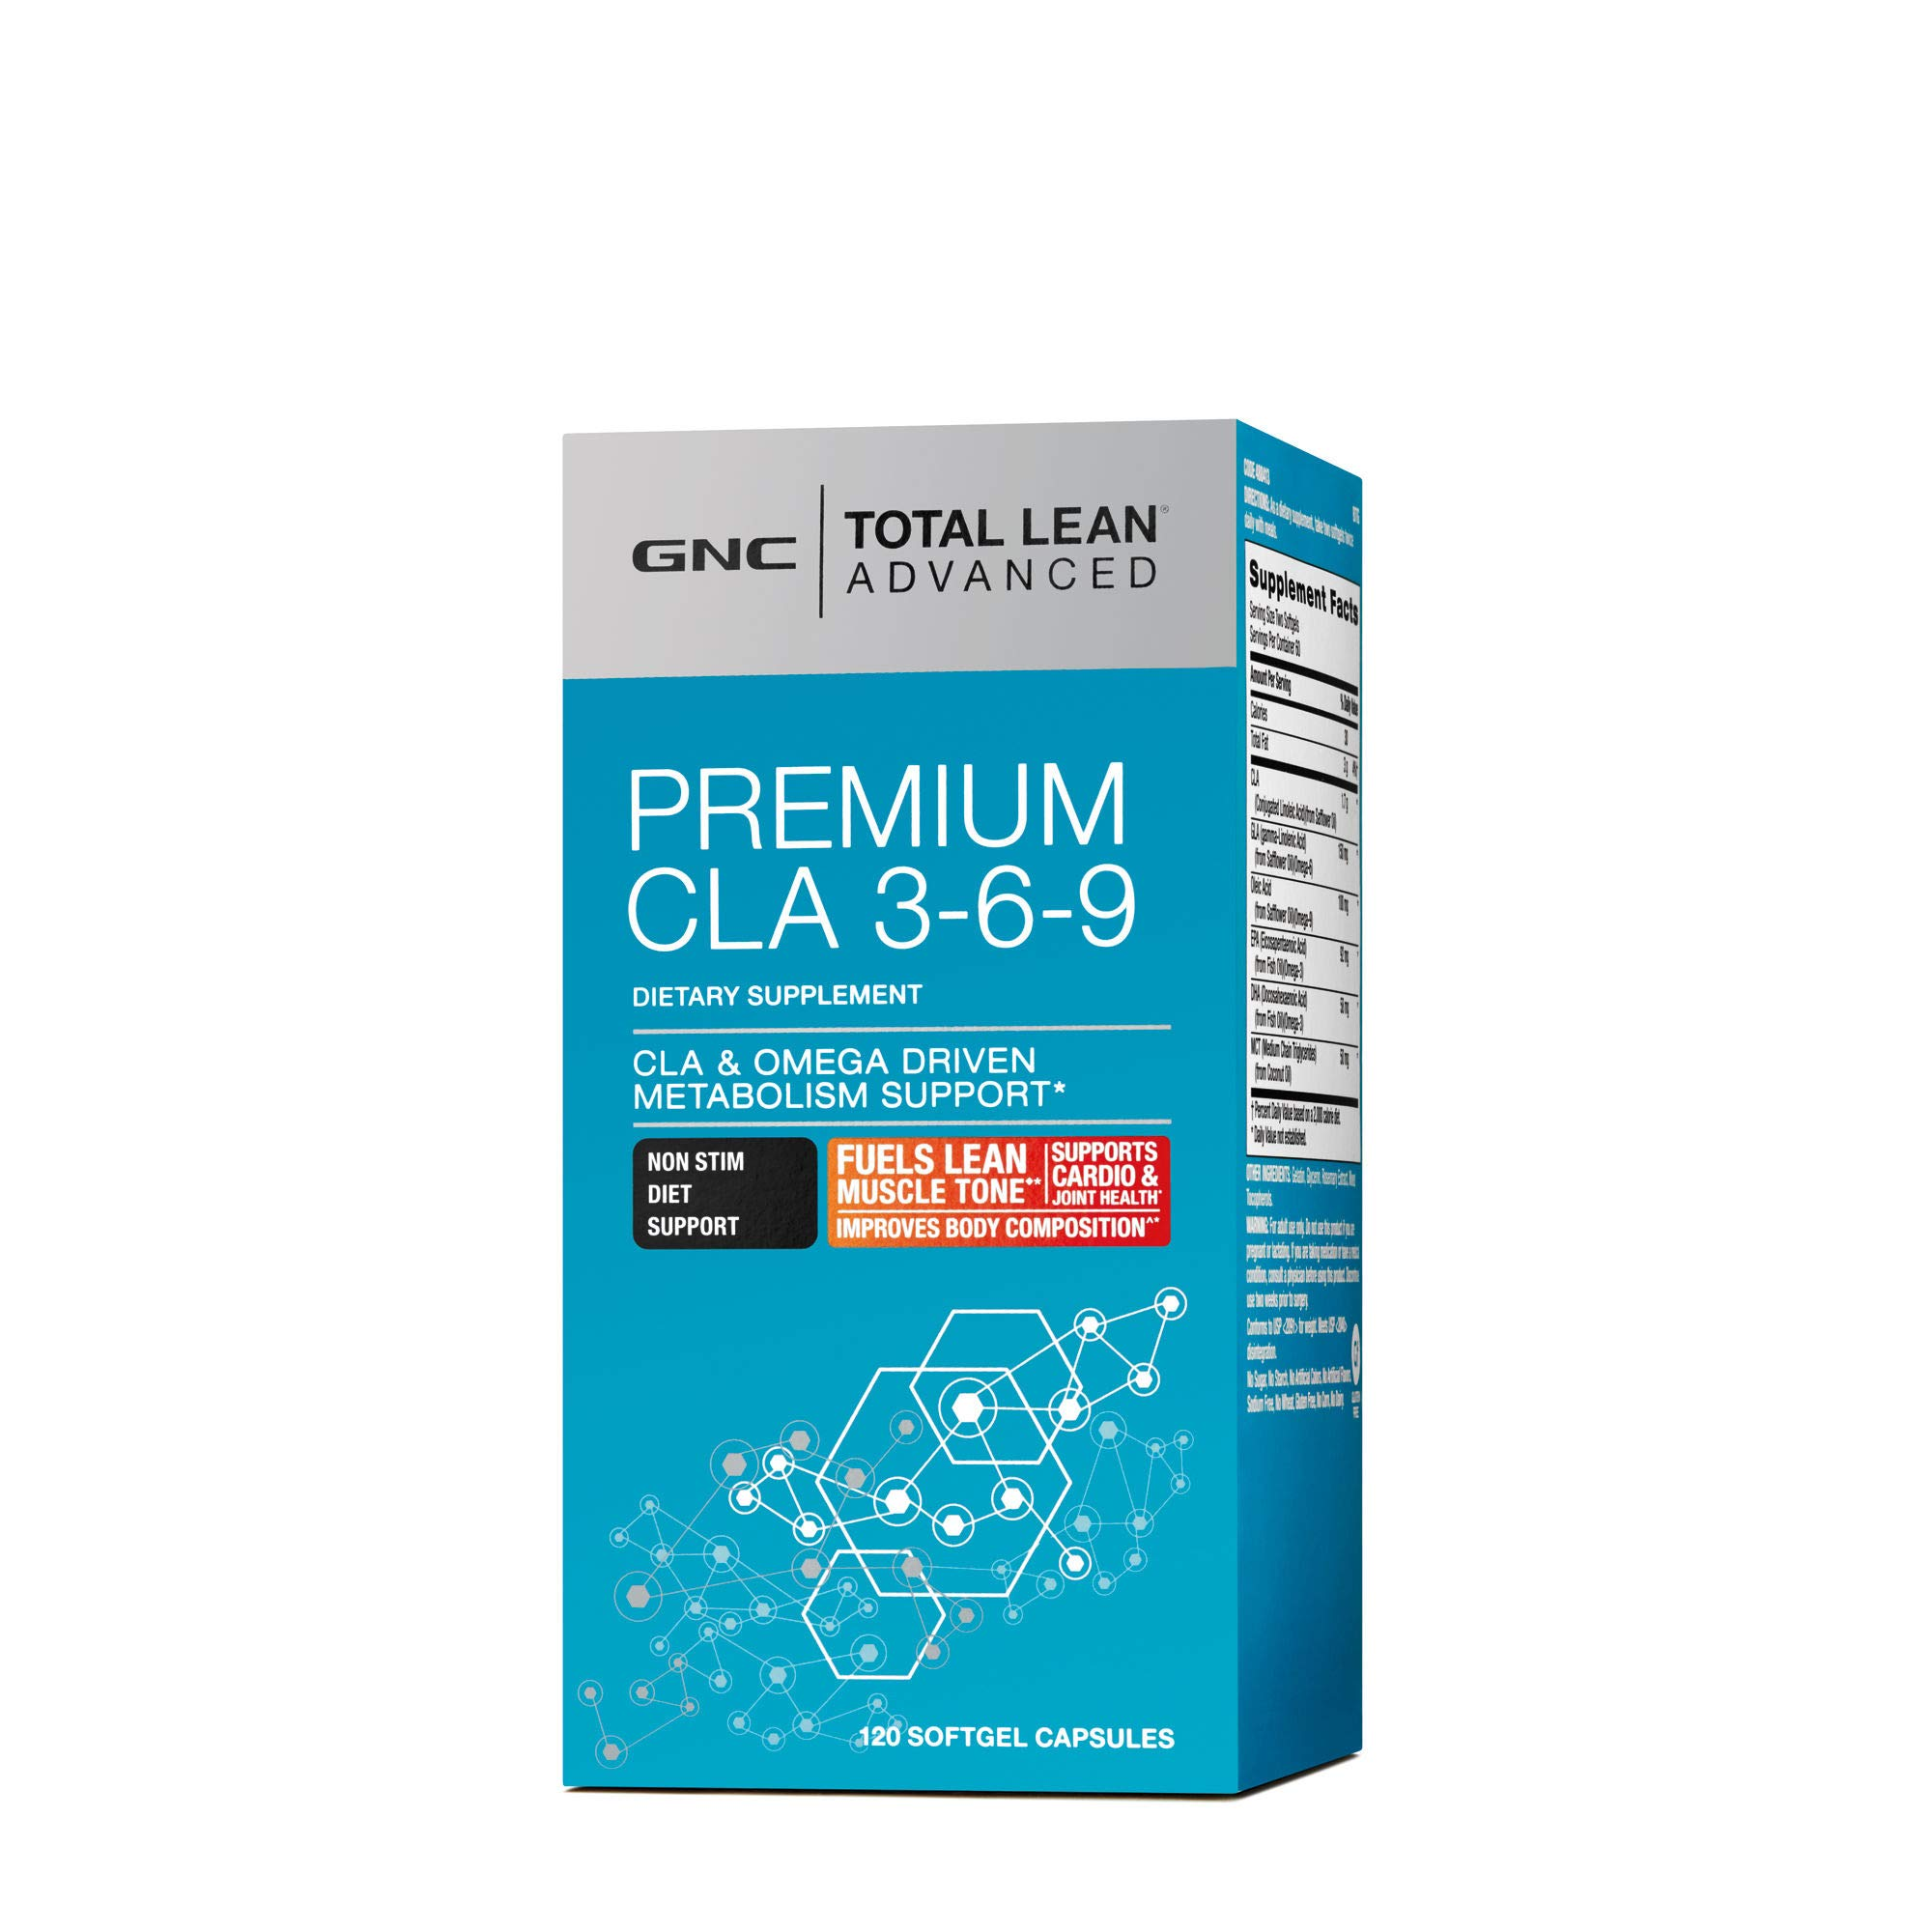 GNC Total Lean Advanced Premium CLA 3-6-9, 120 Softgel Capsules, Supports Exercise and Muscle Recovery by GNC (Image #1)